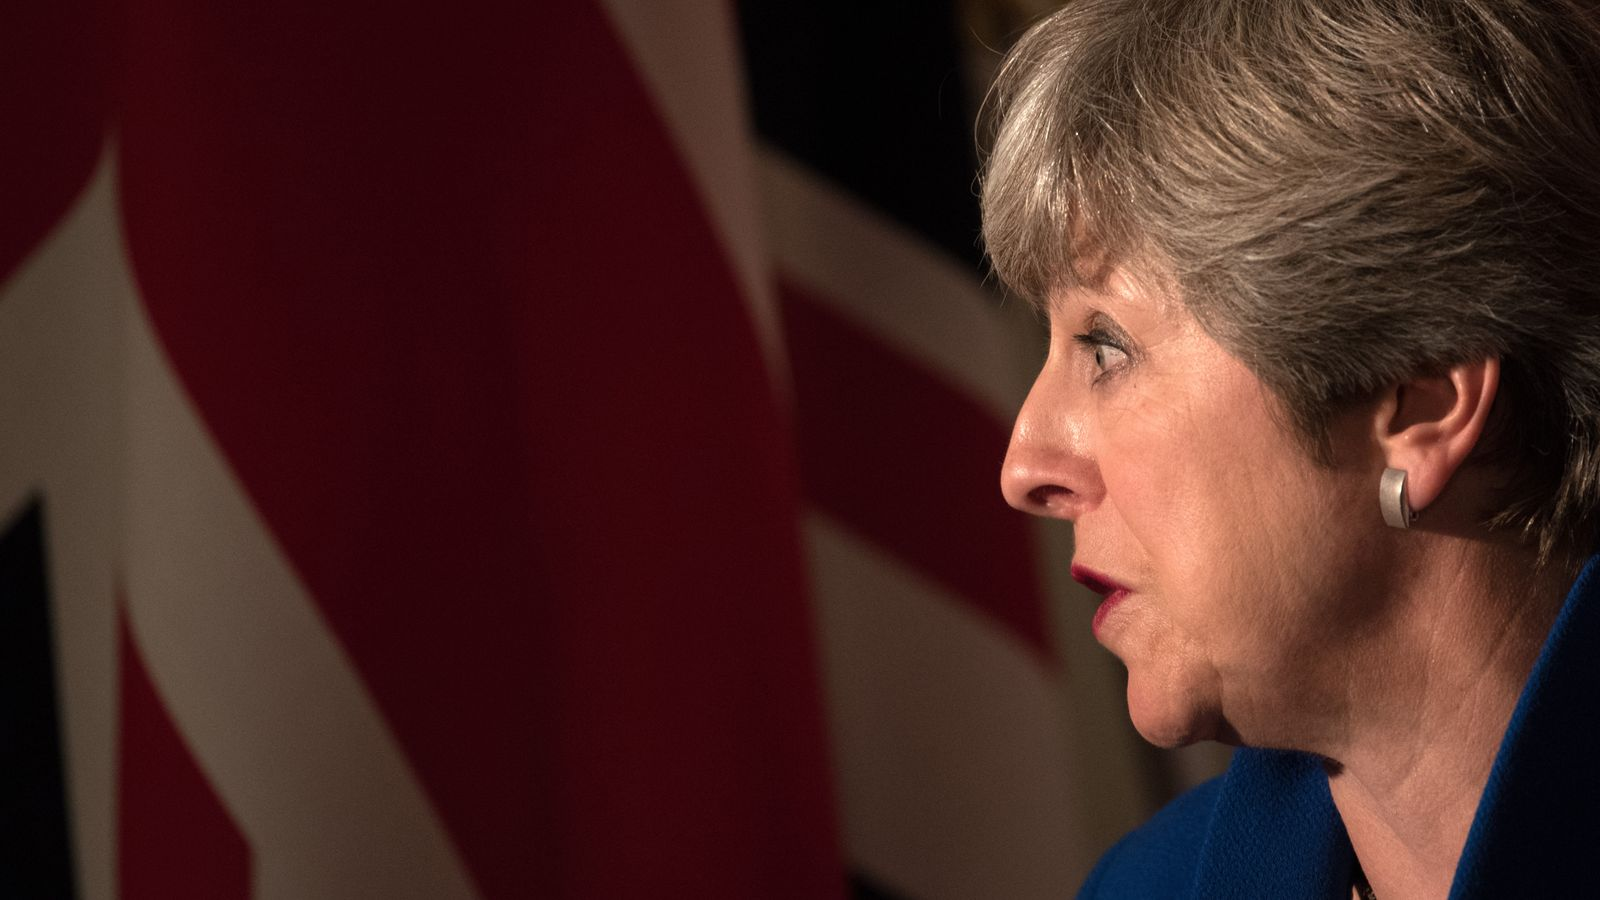 Theresa May speaks during a press conference with Japan's Prime Minister Shinzo Abe